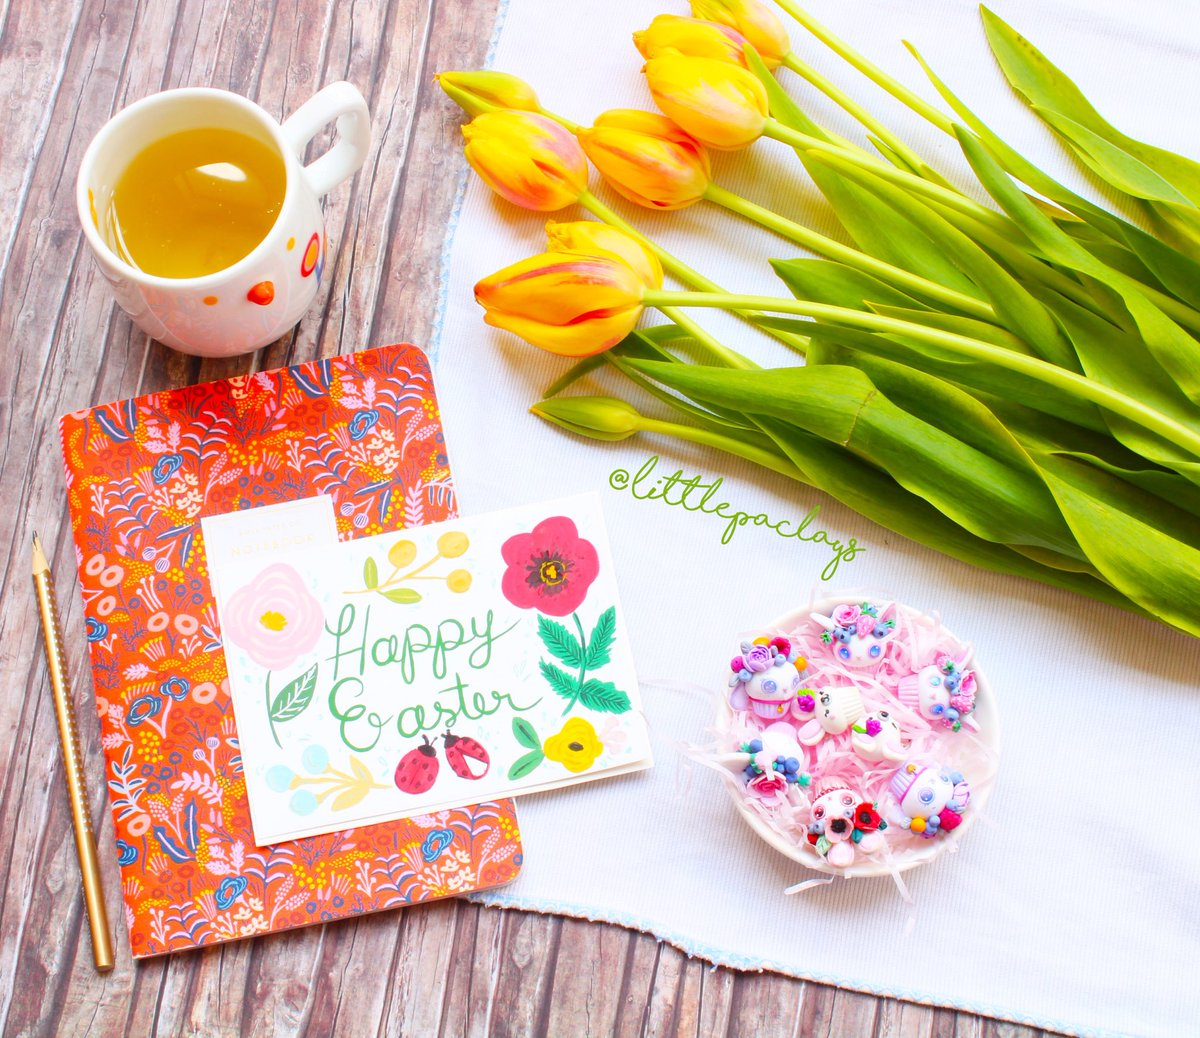 Littlepaclays On Twitter Happy Easter Everyone Hope You Are All Having A Wonderful Weekend Easter Happy Polymerclay Happyweekend Illustration Tulips Greetingcards Love Flowerart Art Photo Photoshoo Garden Lettering Workshop Watercolor